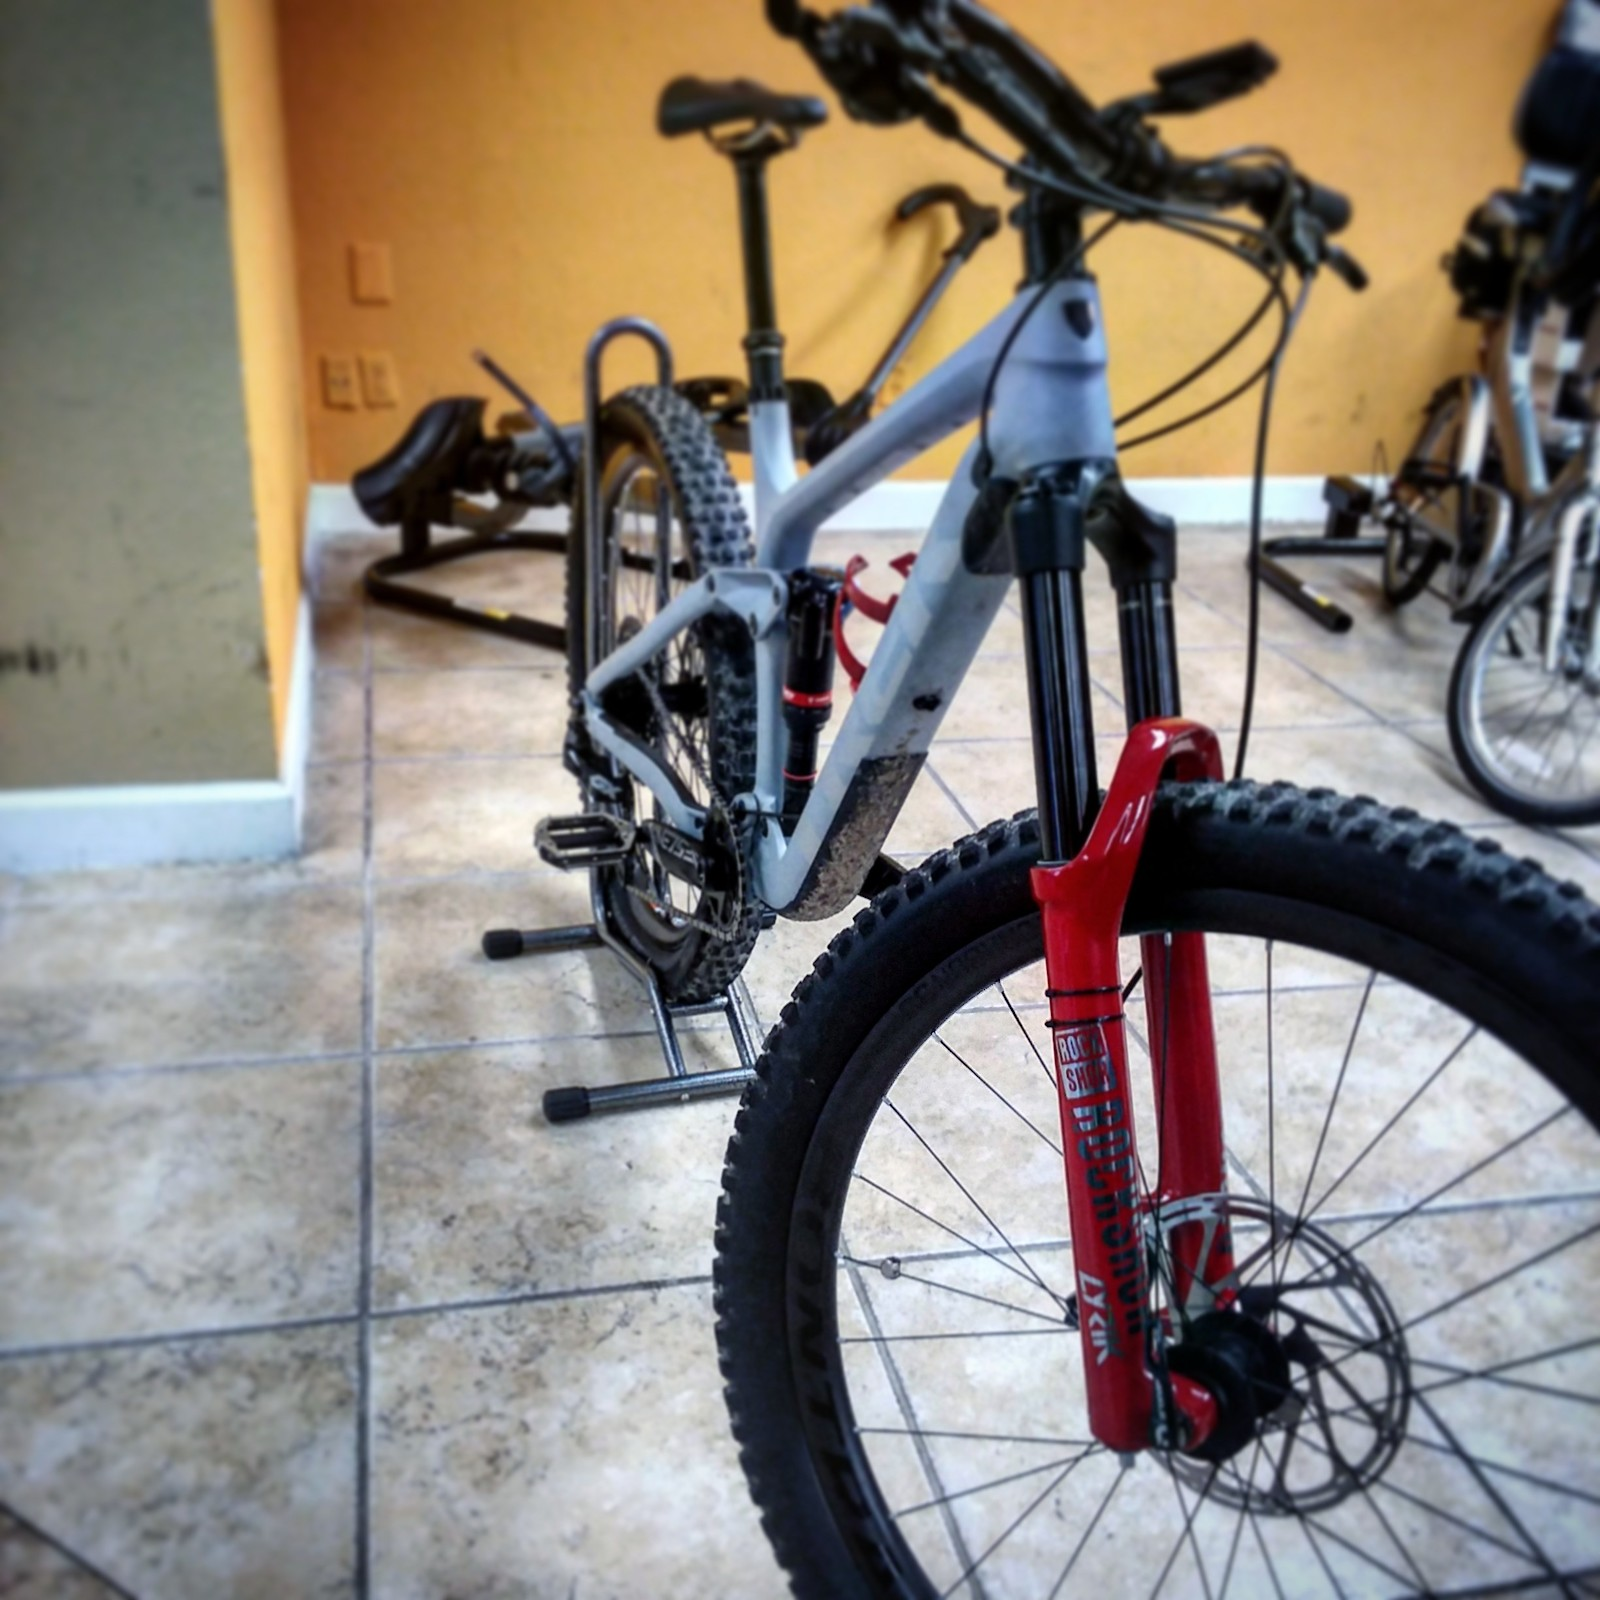 New fork lowers